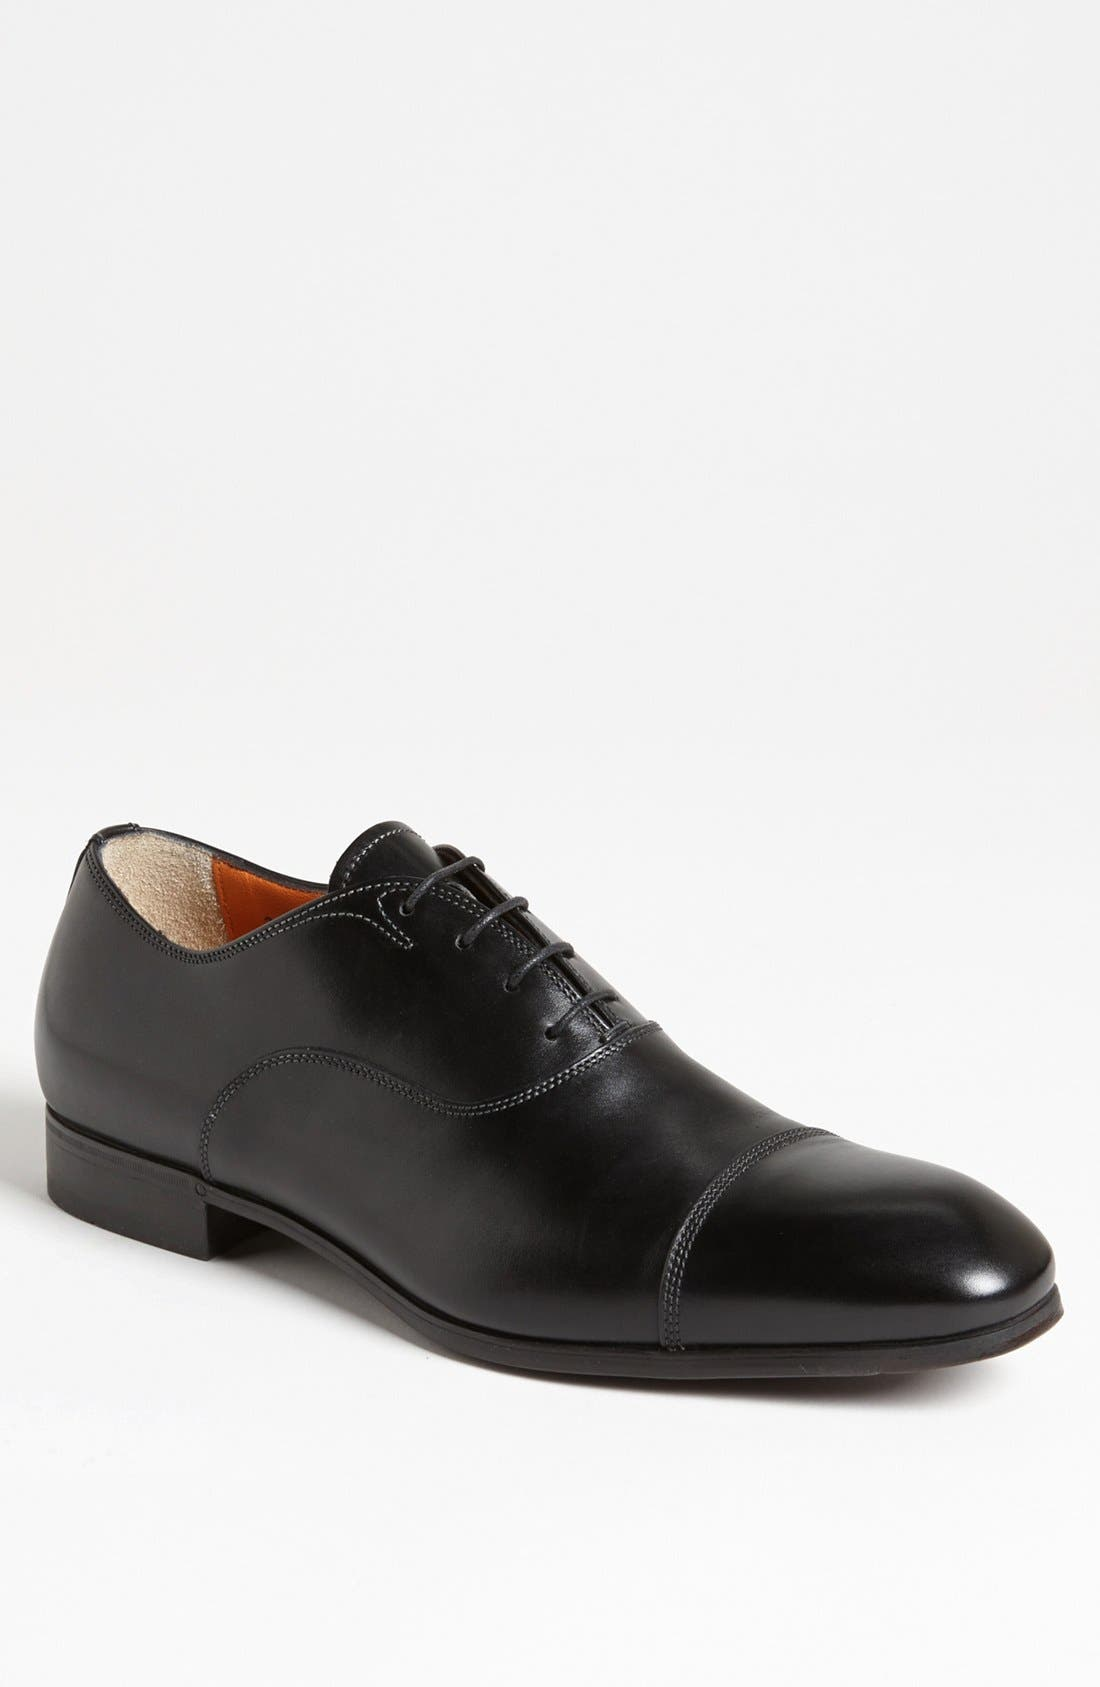 Santoni 'Salem' Cap Toe Oxford (Men)